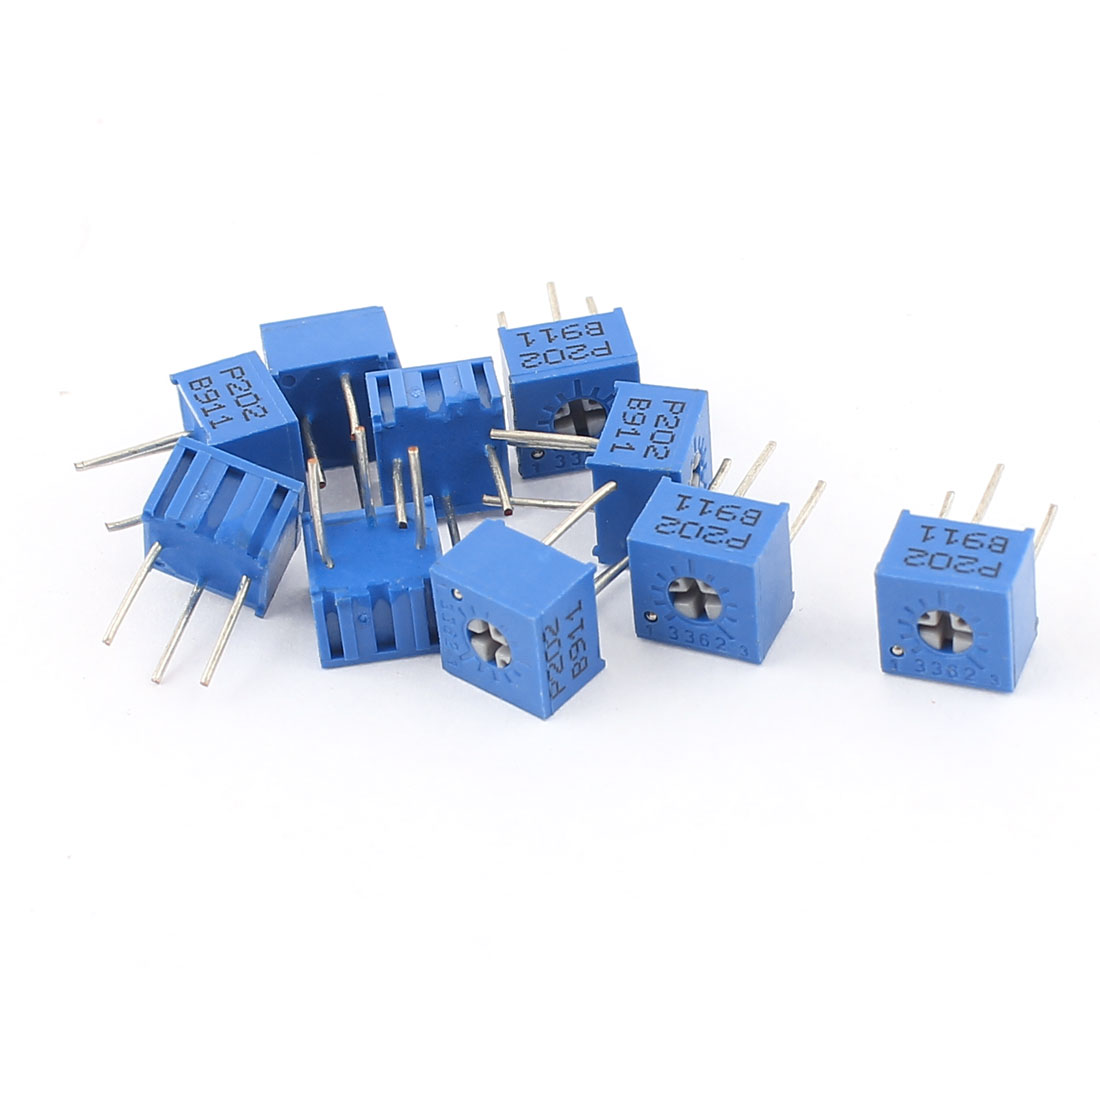 10Pcs Adjustable Potentiometer Trimmer Variable Resistor 3362P-202